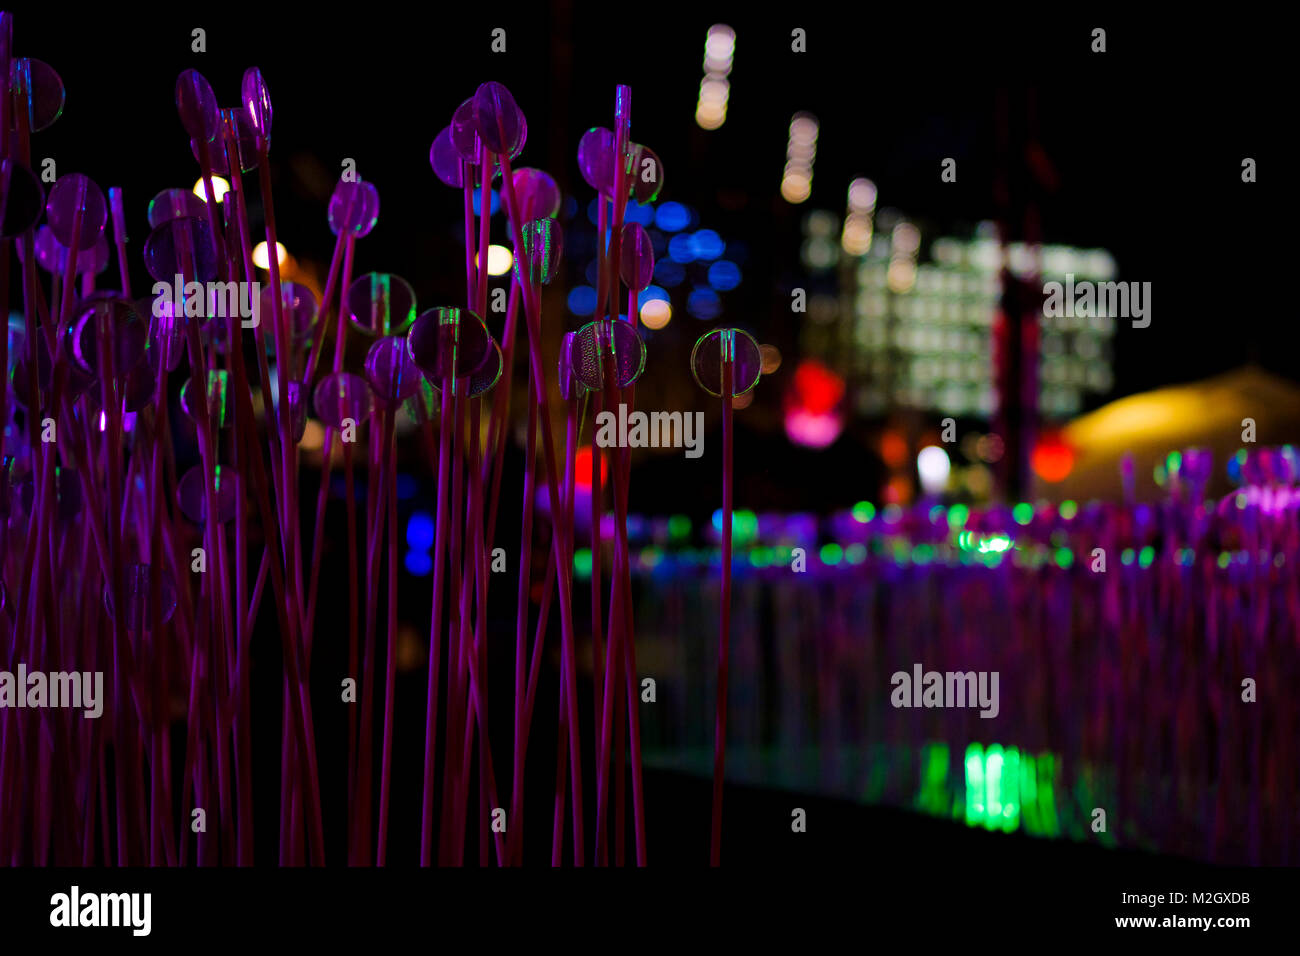 Crowds enjoy Entre les rangs by Rami Bebawi / KANVA - an installation within the Kings Cross Area of Lumiere London - Stock Image